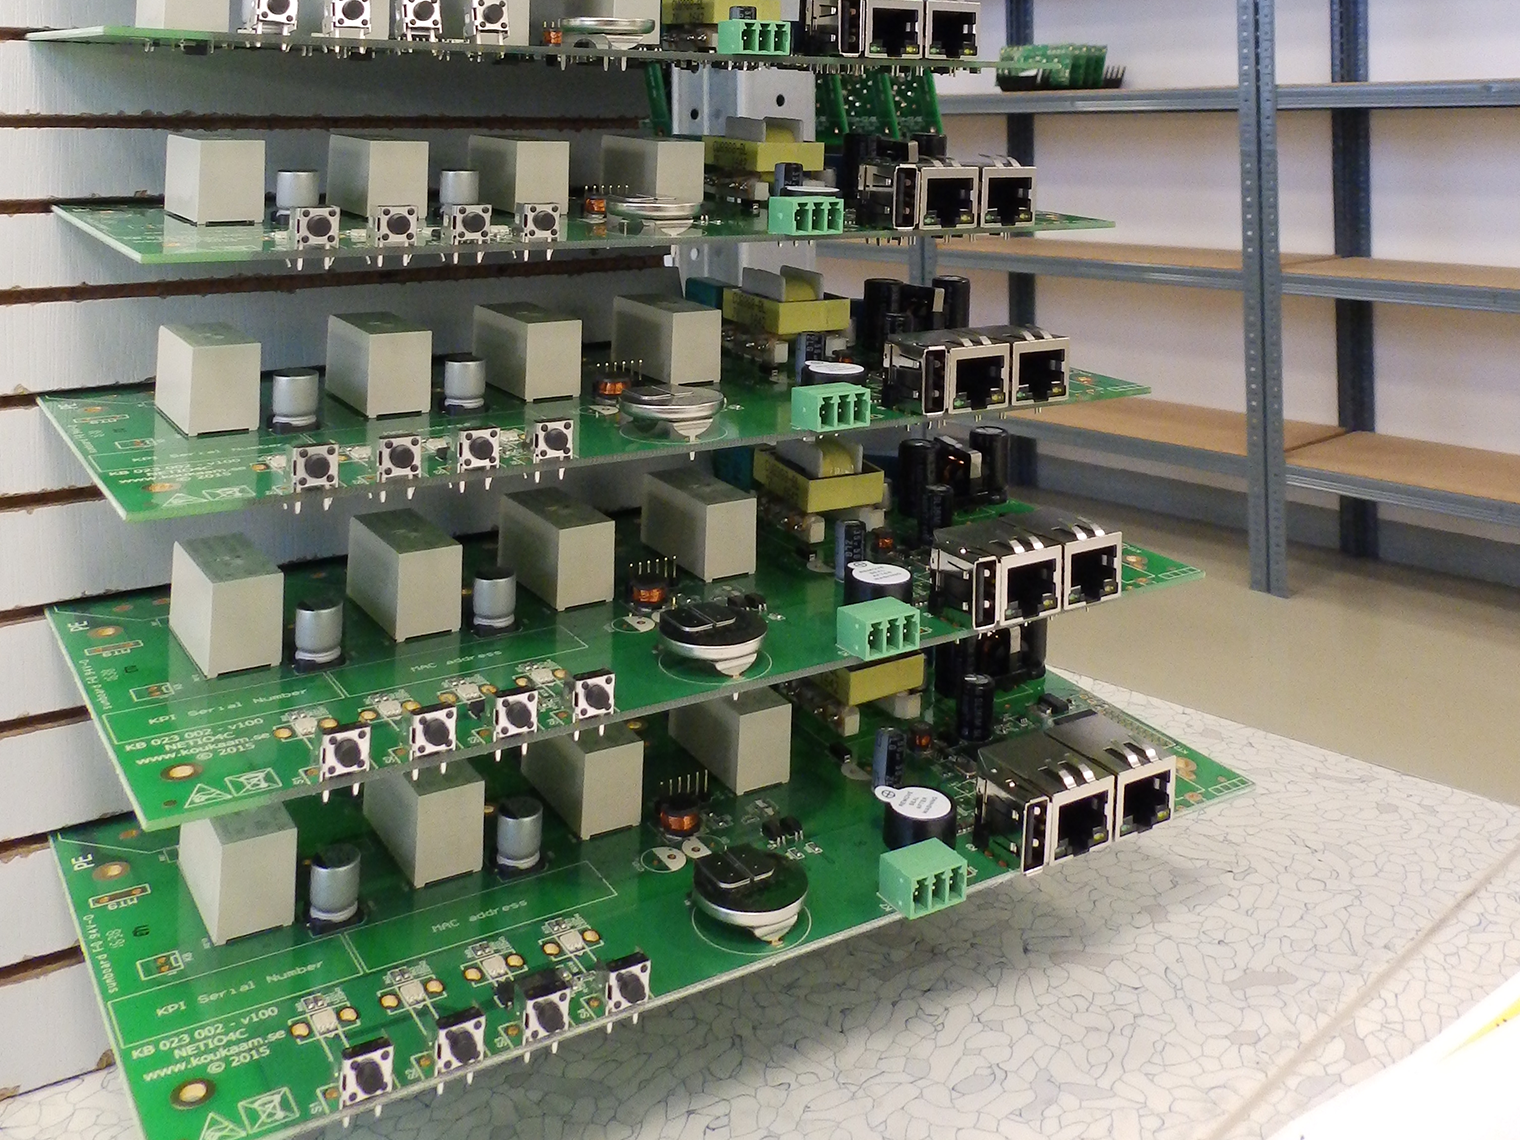 Watchodg, snmp, Telnet, M2M protocols supported by NETIO 4C, Smart pdu